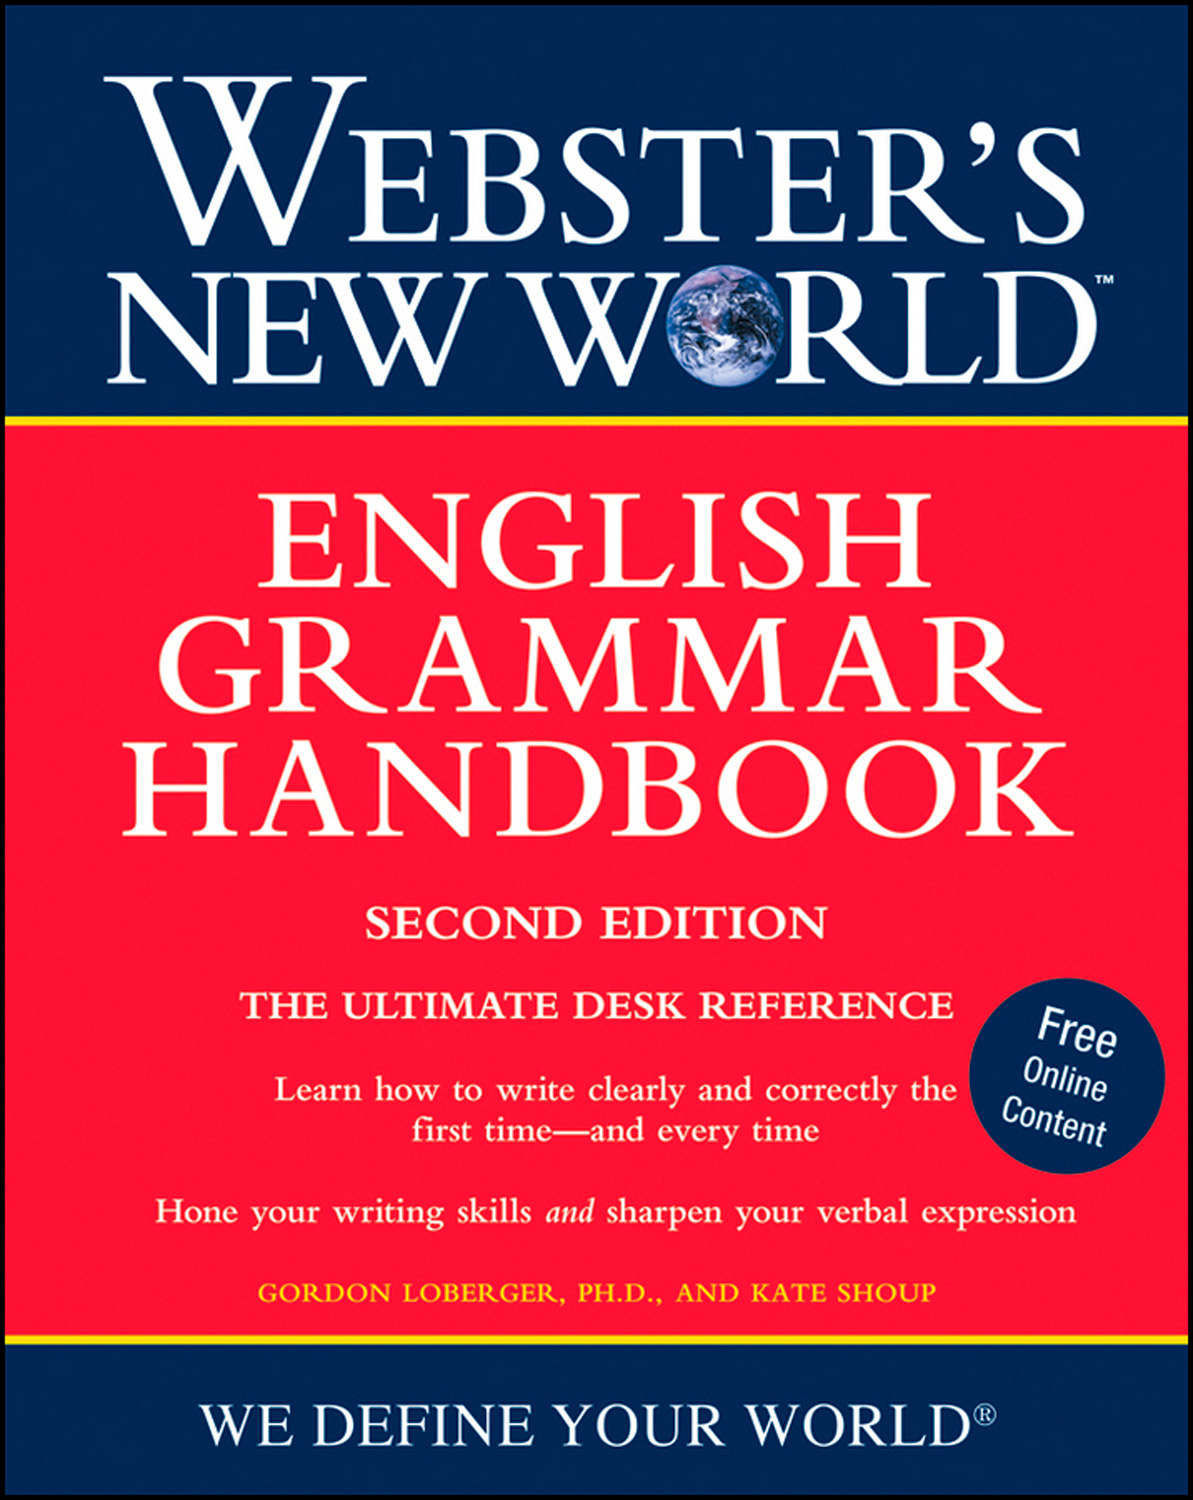 Webster's New World English Grammar Handbook, Second Edition-9780470410806